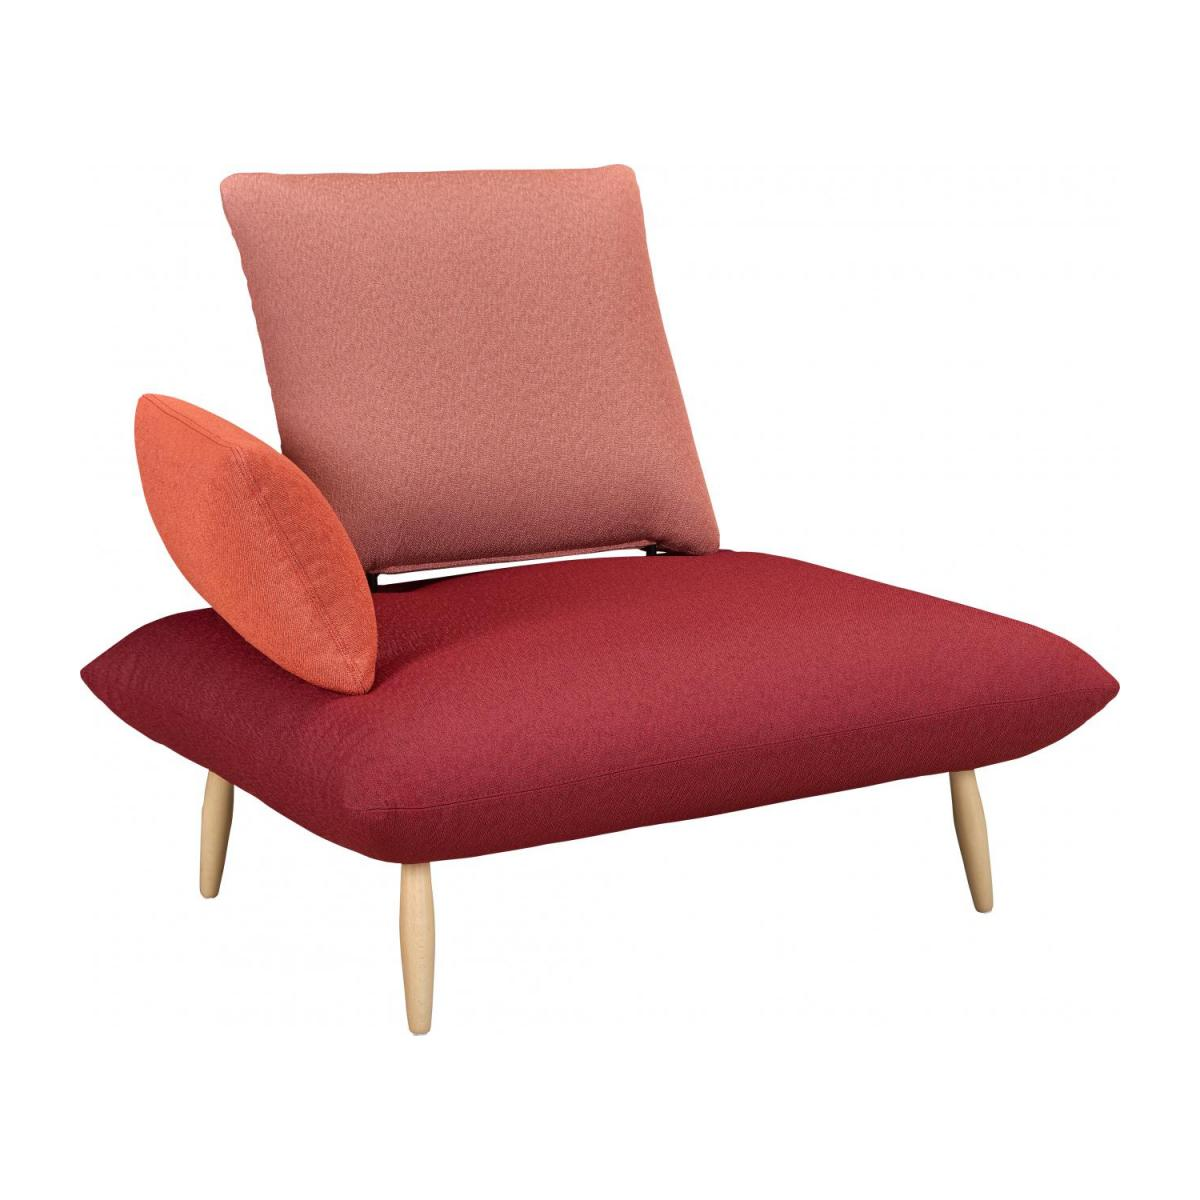 Sessel In Rot Naoko Sessel Aus Stoff Rot Rosa Und Orange